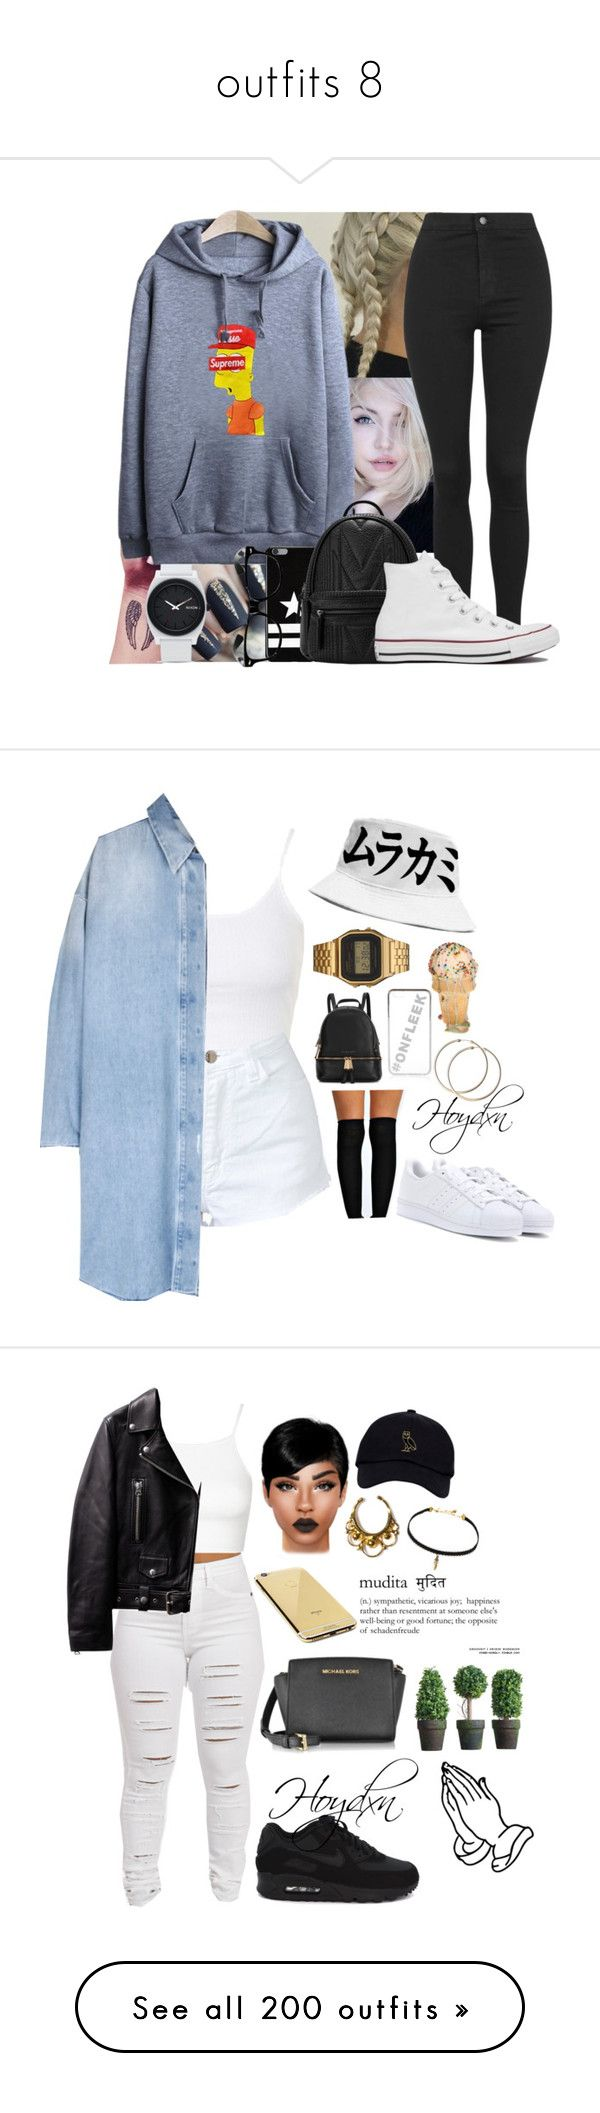 """""""outfits 8"""" by mjvflorez ❤ liked on Polyvore featuring Nixon, Topshop, Givenchy, Converse, Boohoo, adidas Originals, Michael Kors, G-Shock, River Island and NIKE"""